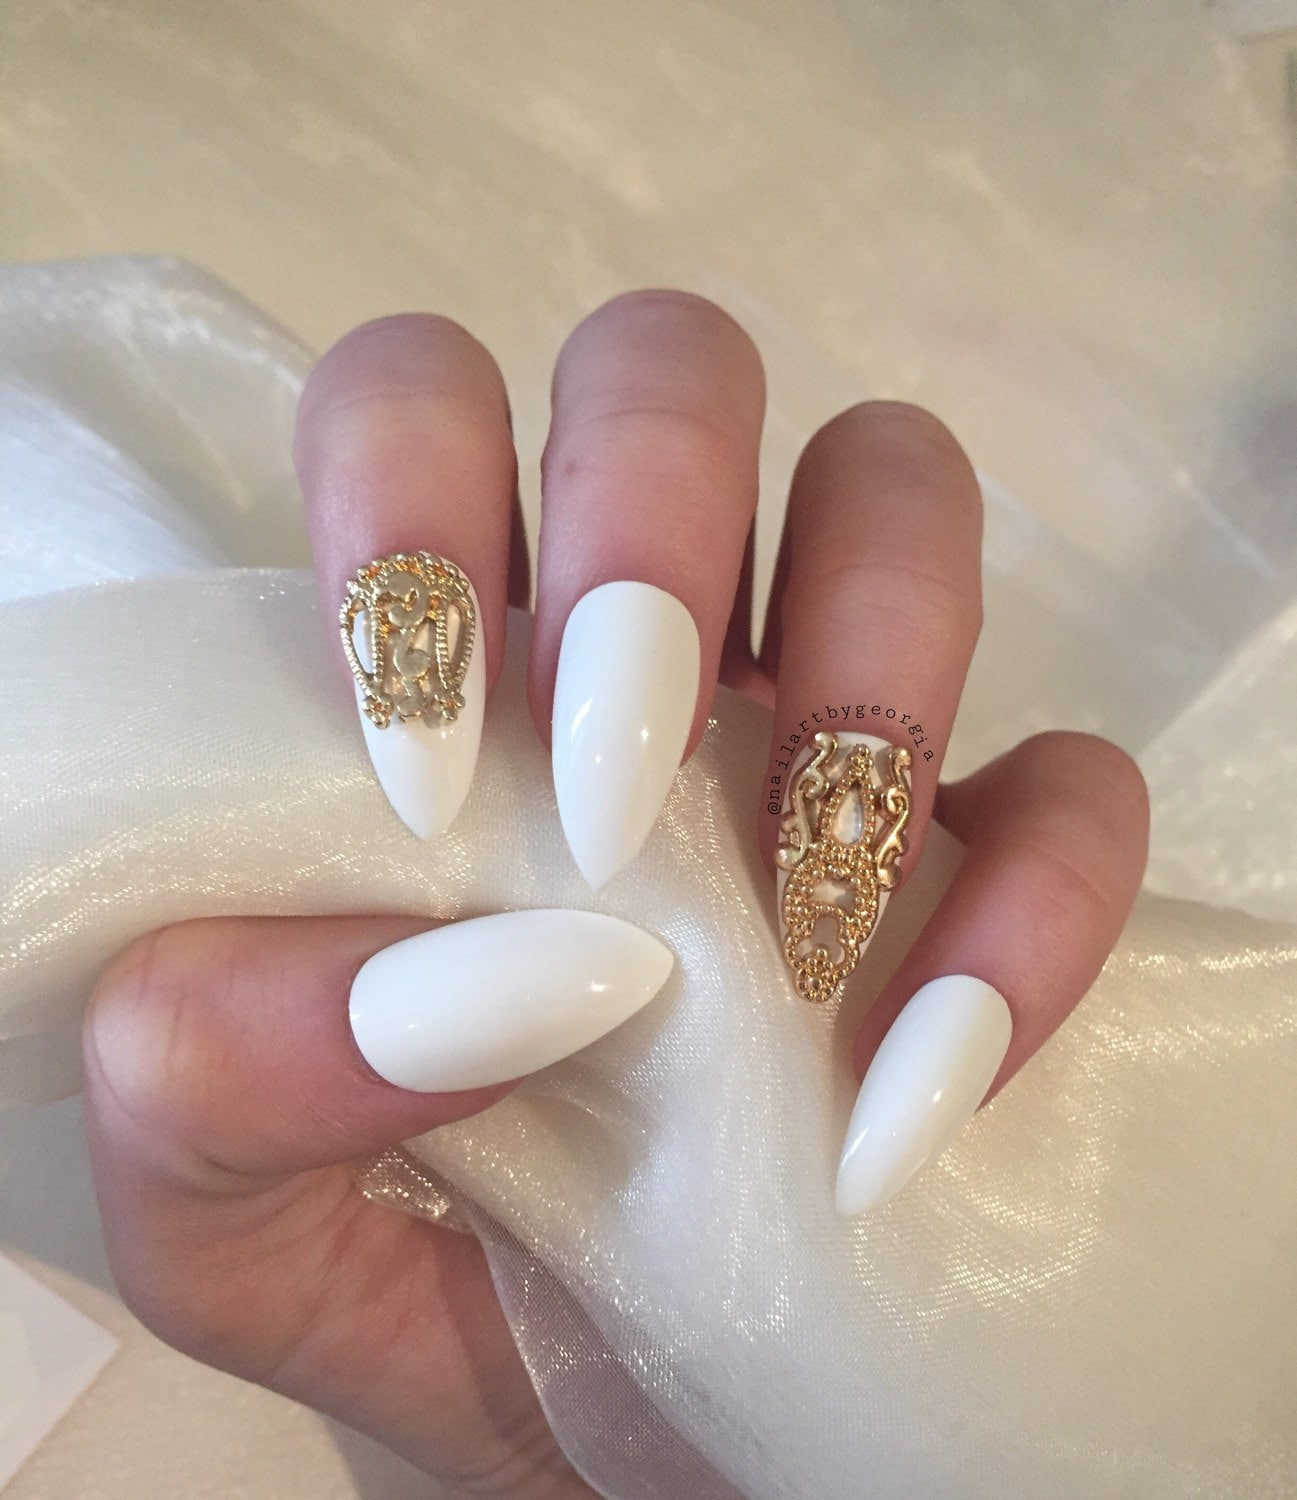 35 Elegant and Amazing White and Gold Nail Art Designs. January 22, by Kelly Leave a Comment. White and Gold Stiletto Nails. Gold and White Strips Almond Nails. Metallic Gold Foil on White Matte Nails. Gold Chevrons on White Base Mani. White Coat with Gold Sparkles Nail Design.